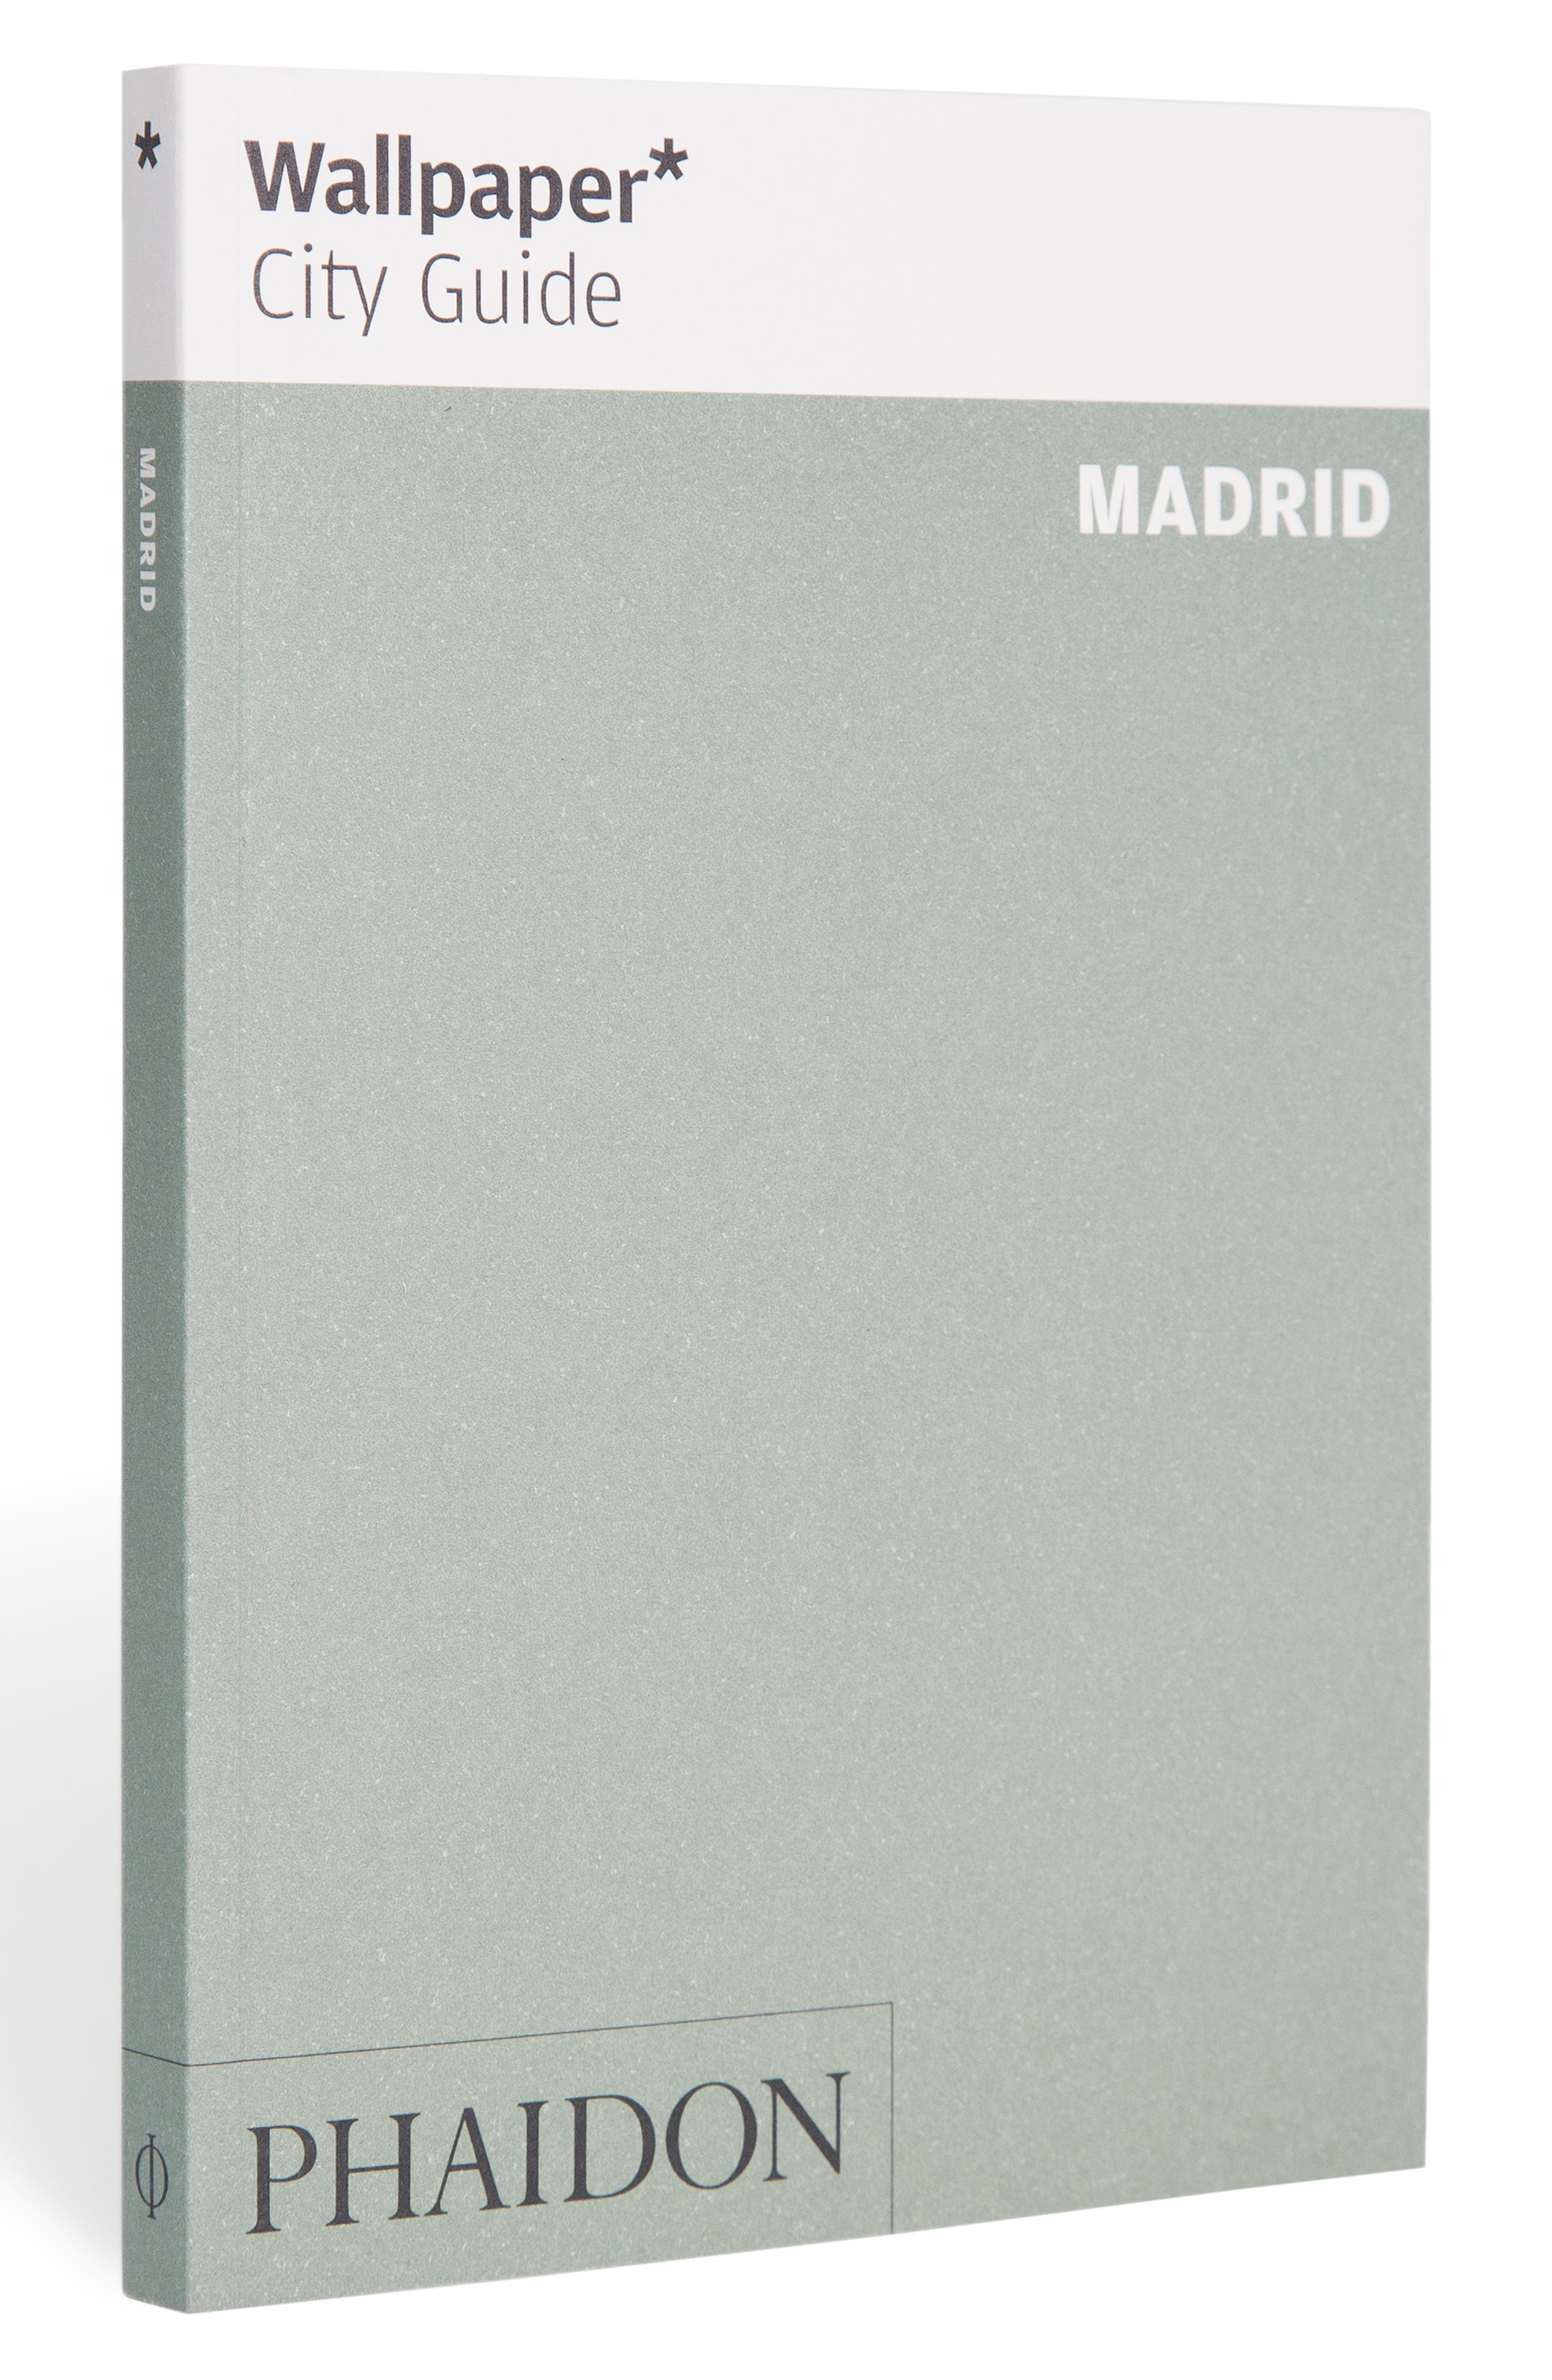 ISBN 9780714876511 product image for 'Wallpaper* City Guide Madrid' Pocket Size Travel Book, Size One Size - Green | upcitemdb.com